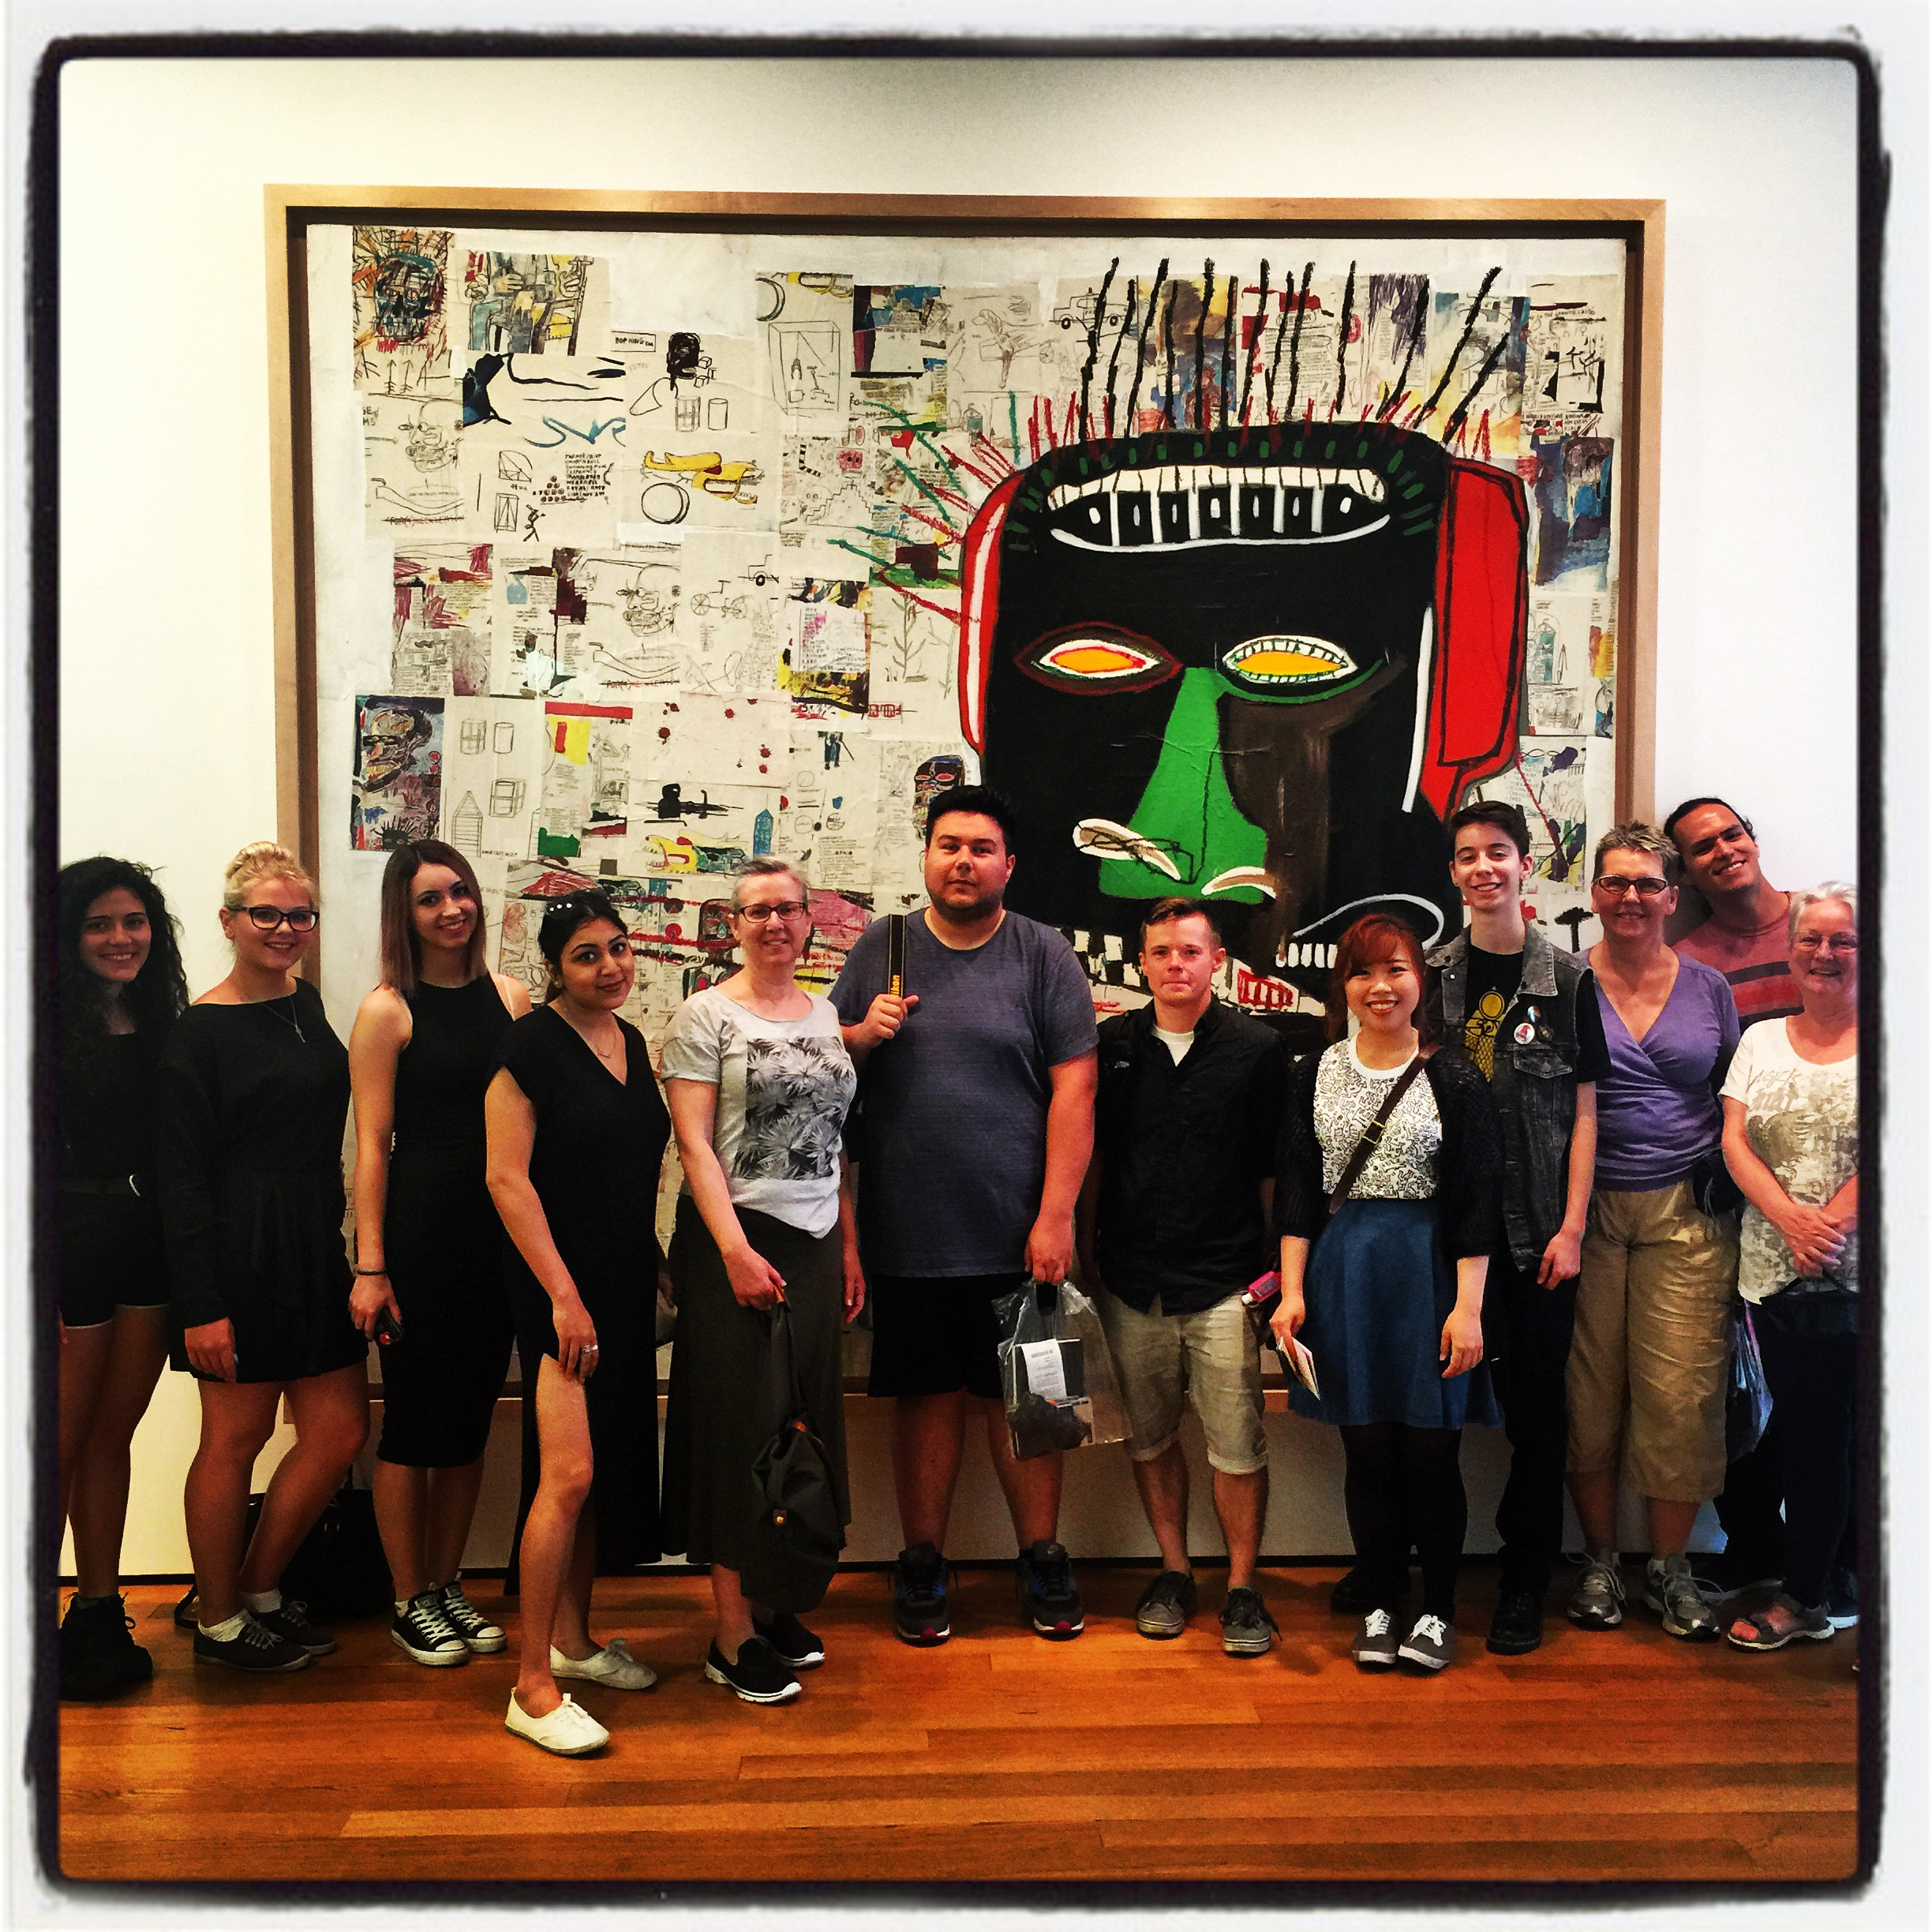 Posing with Basquiat at MoMA (James in the middle!).